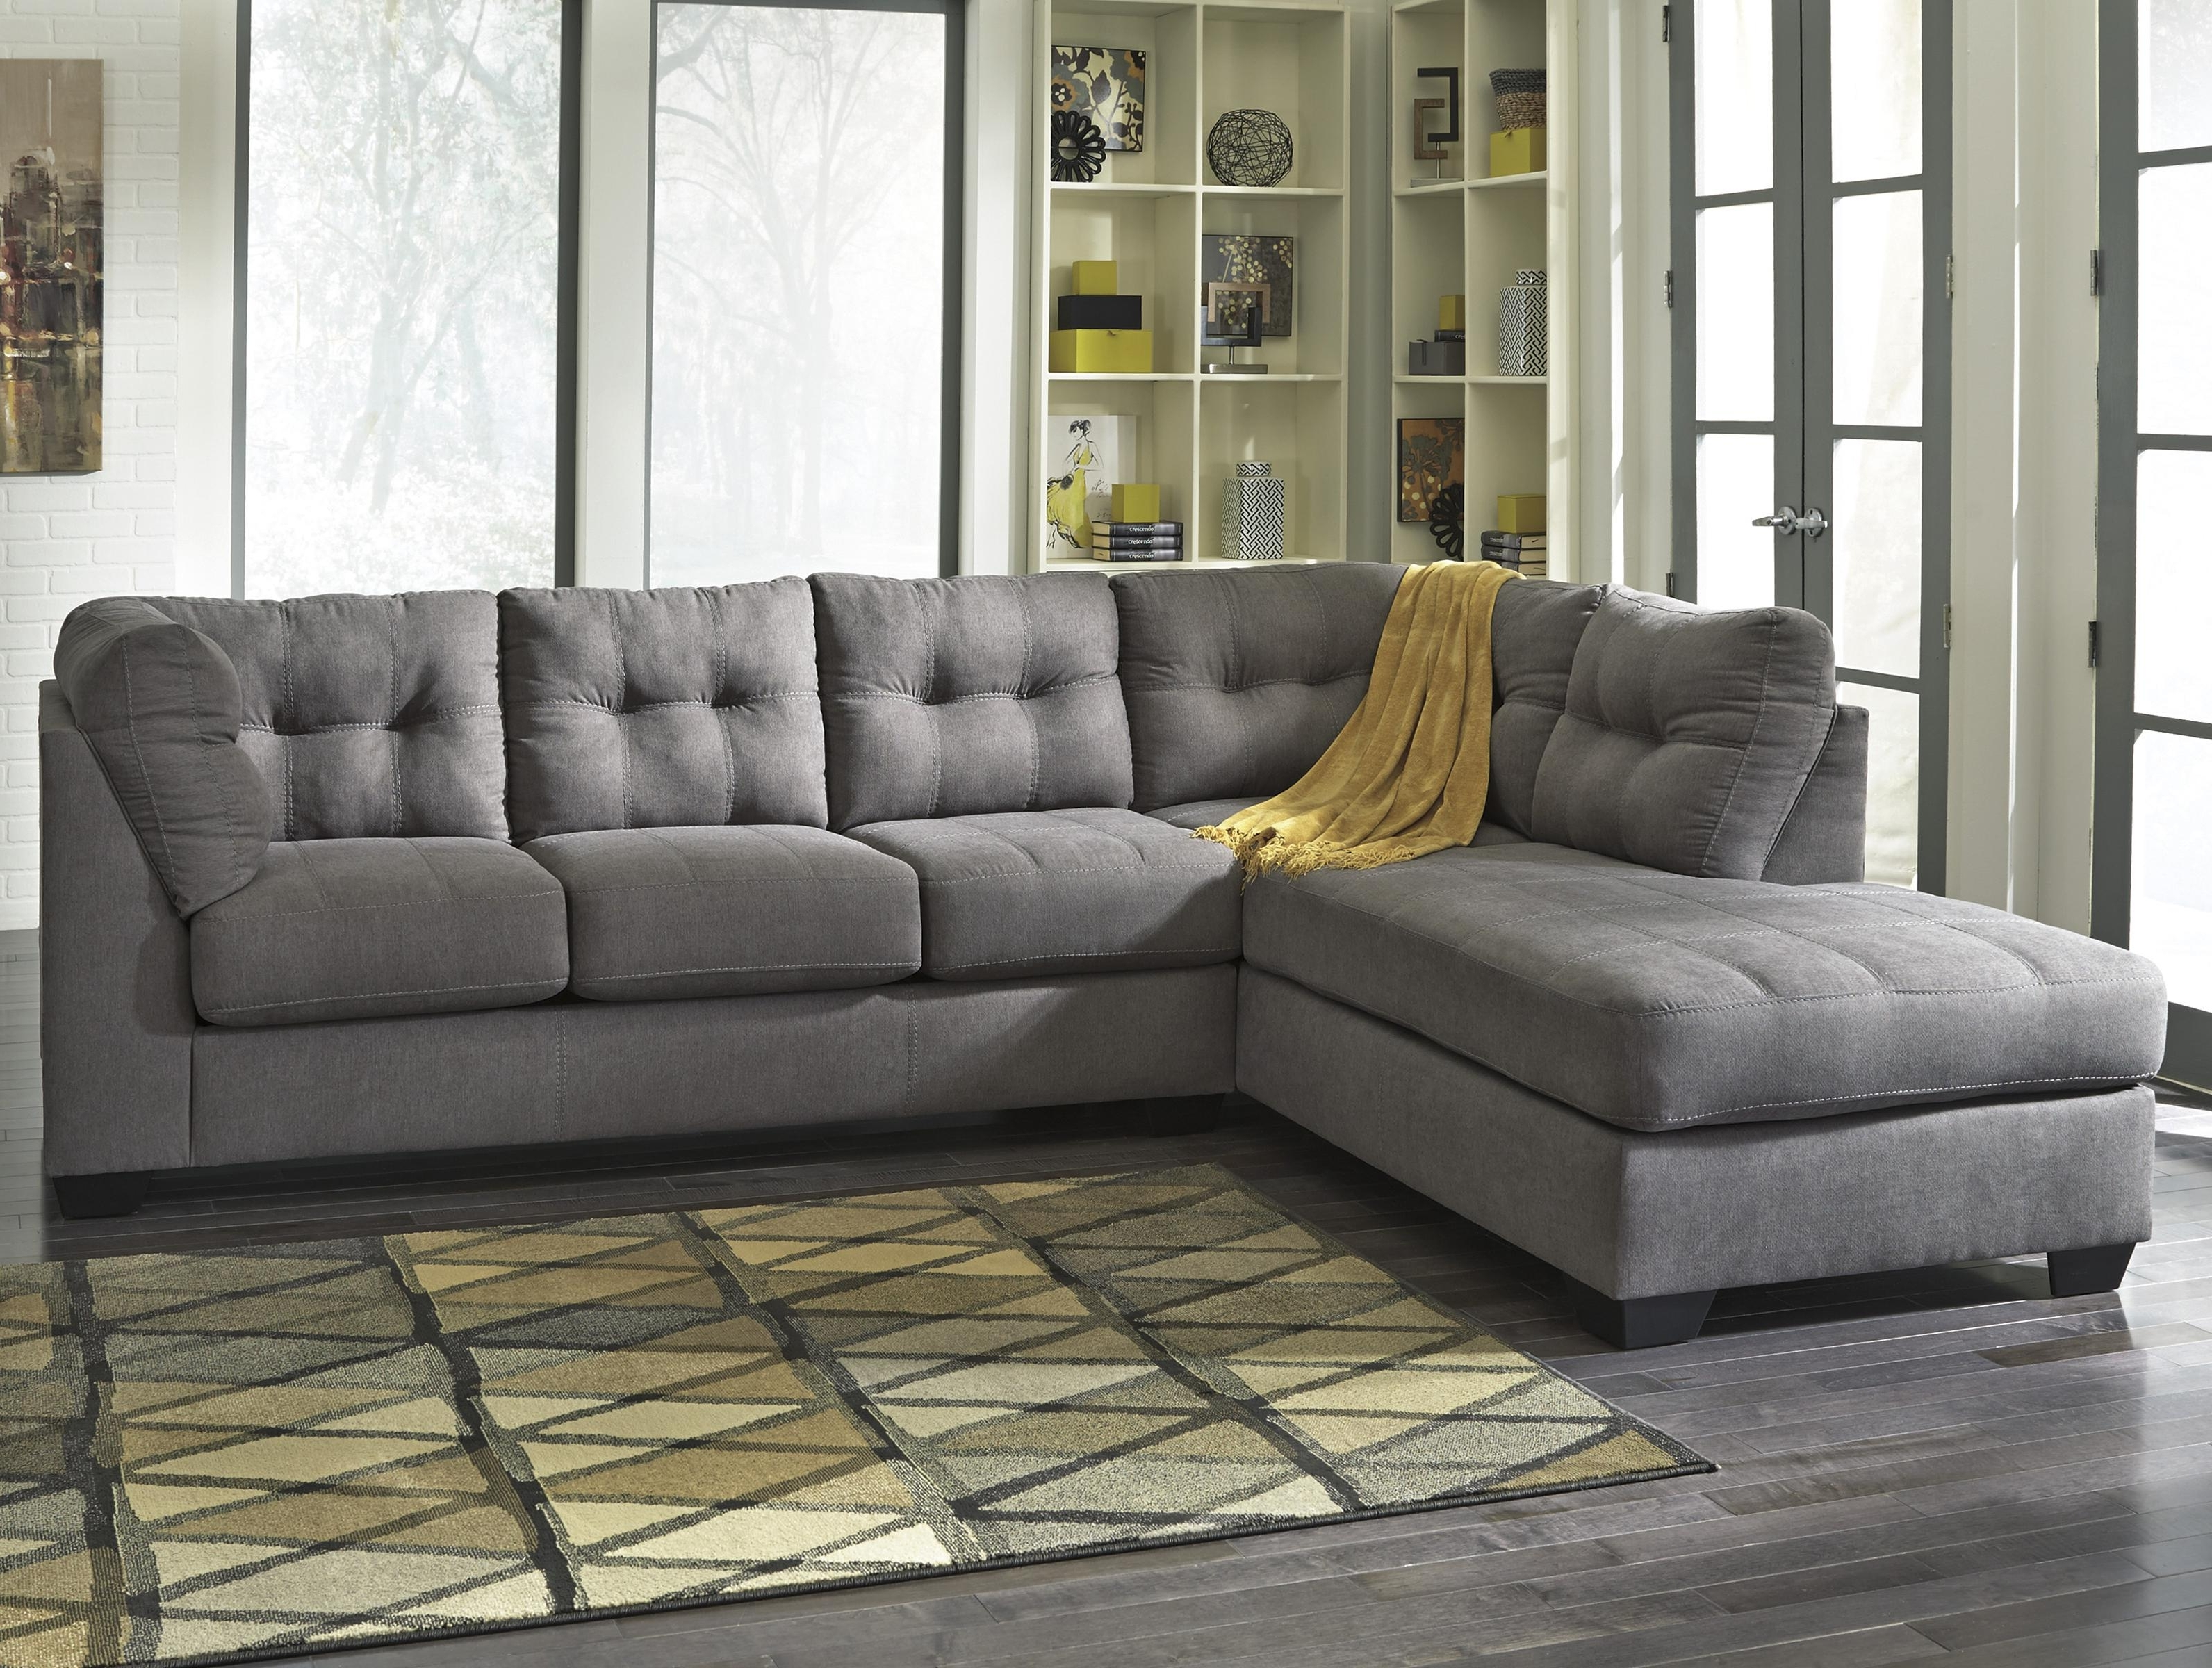 Favorite Choosing 2 Piece Sectional Sofa – Elites Home Decor Pertaining To Sectional Sofas That Can Be Rearranged (View 5 of 15)